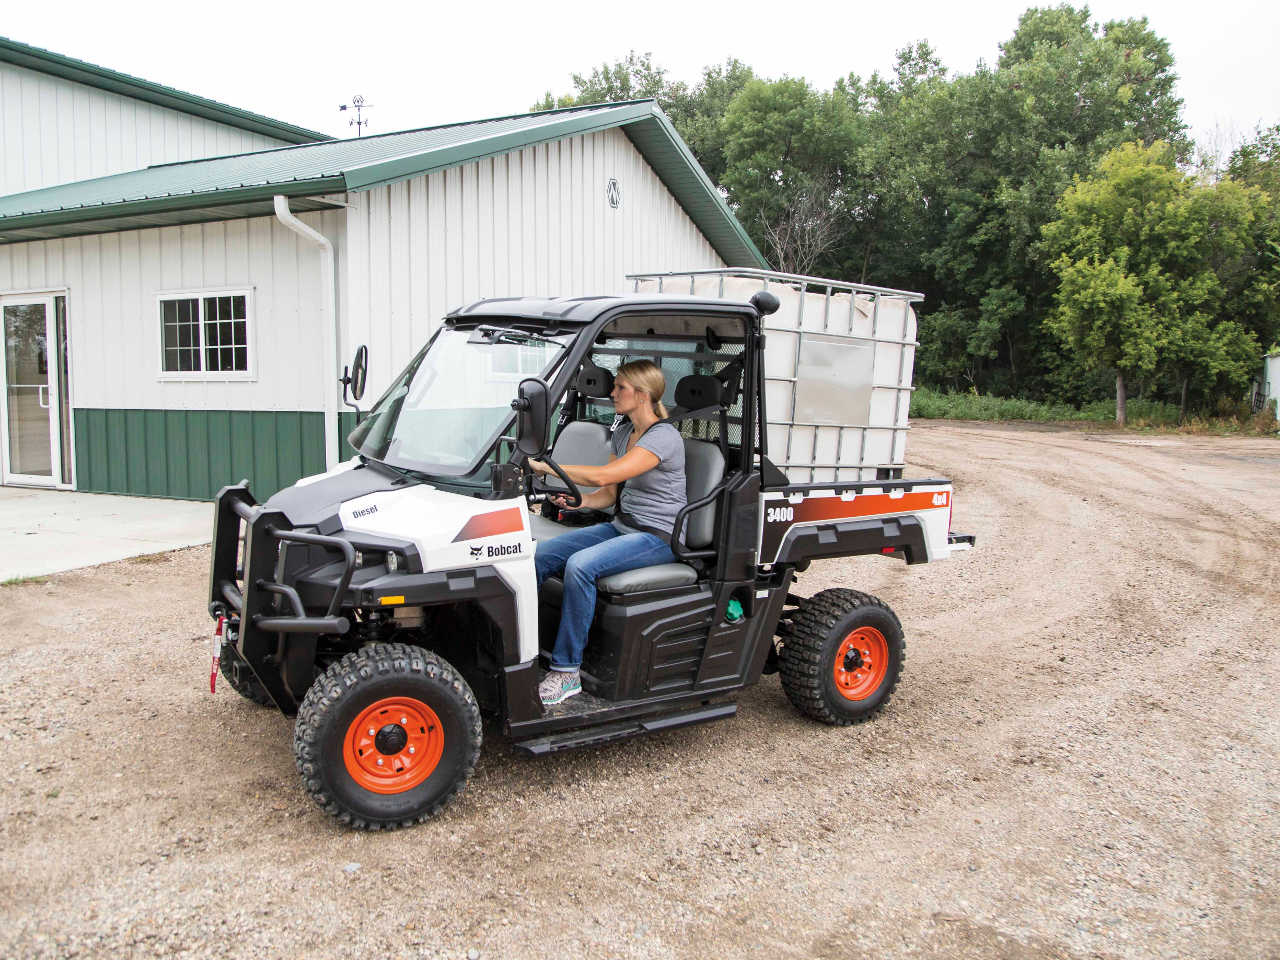 2015 Bobcat Utility Vehicles Offer Exceptional Performance For